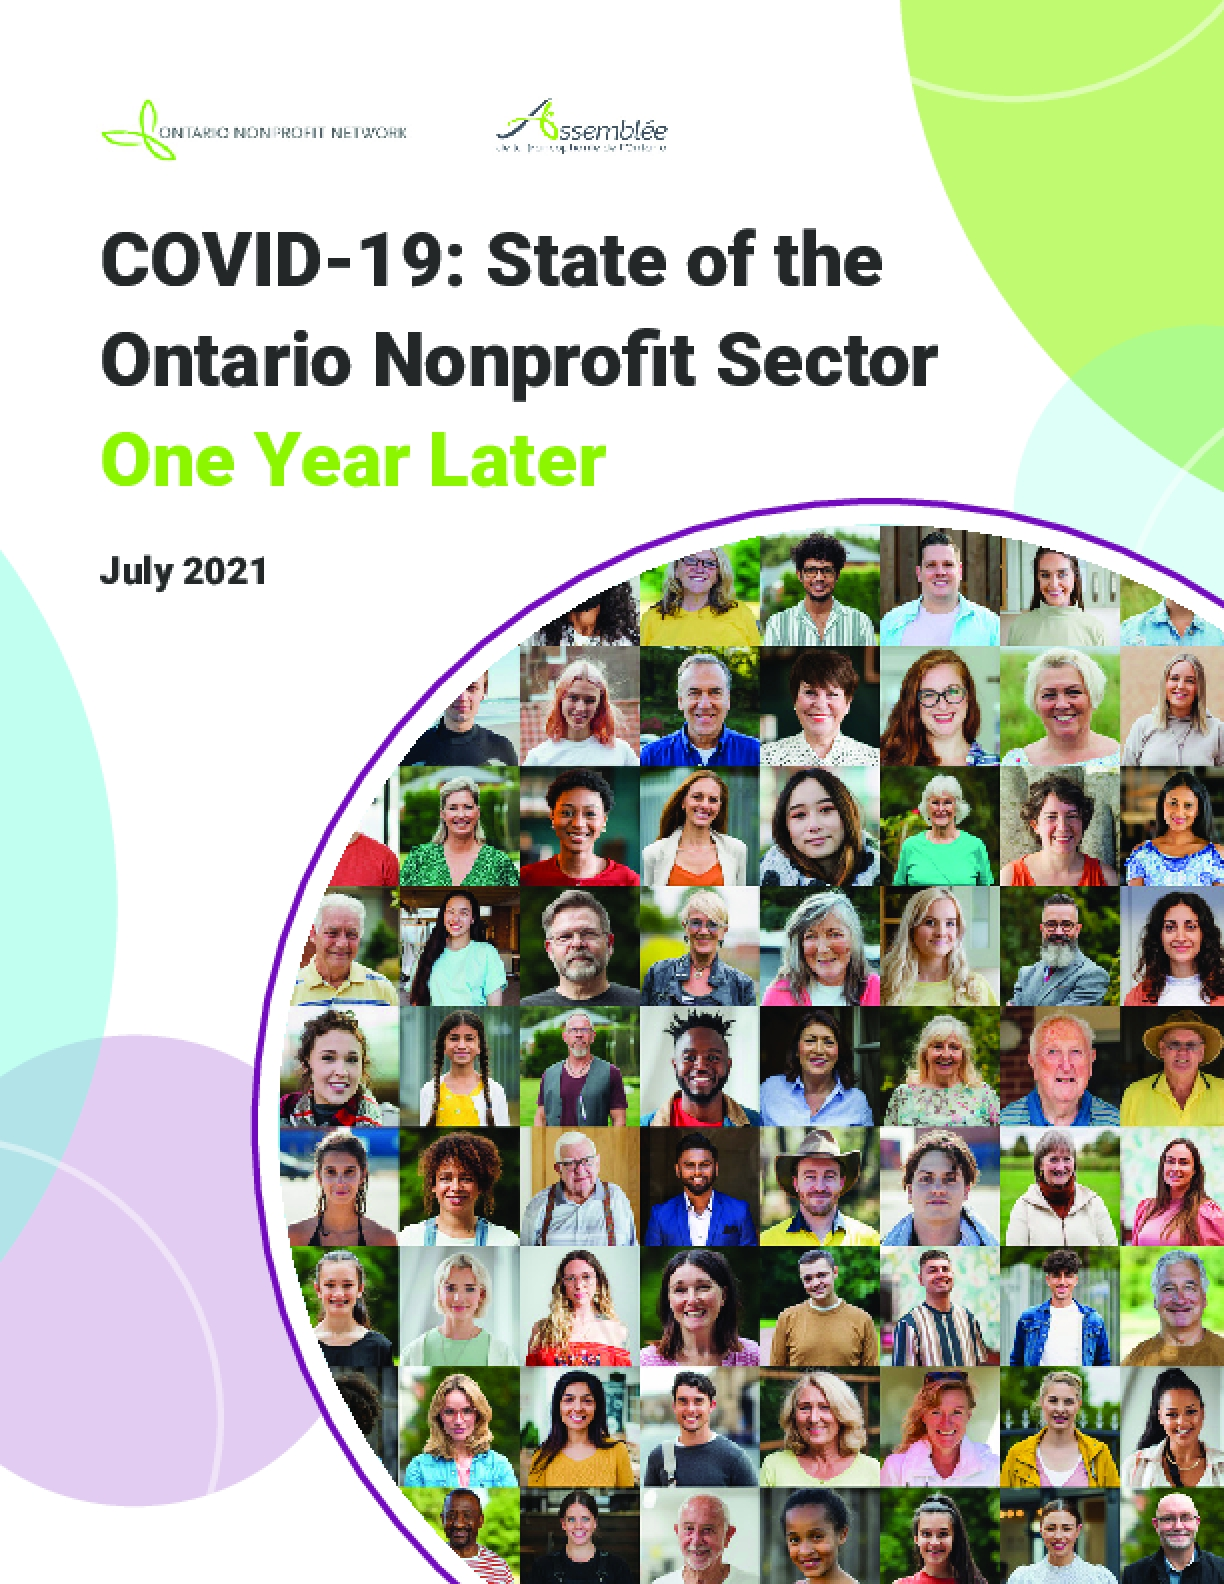 COVID-19: State of the Ontario Nonprofit Sector One Year Later